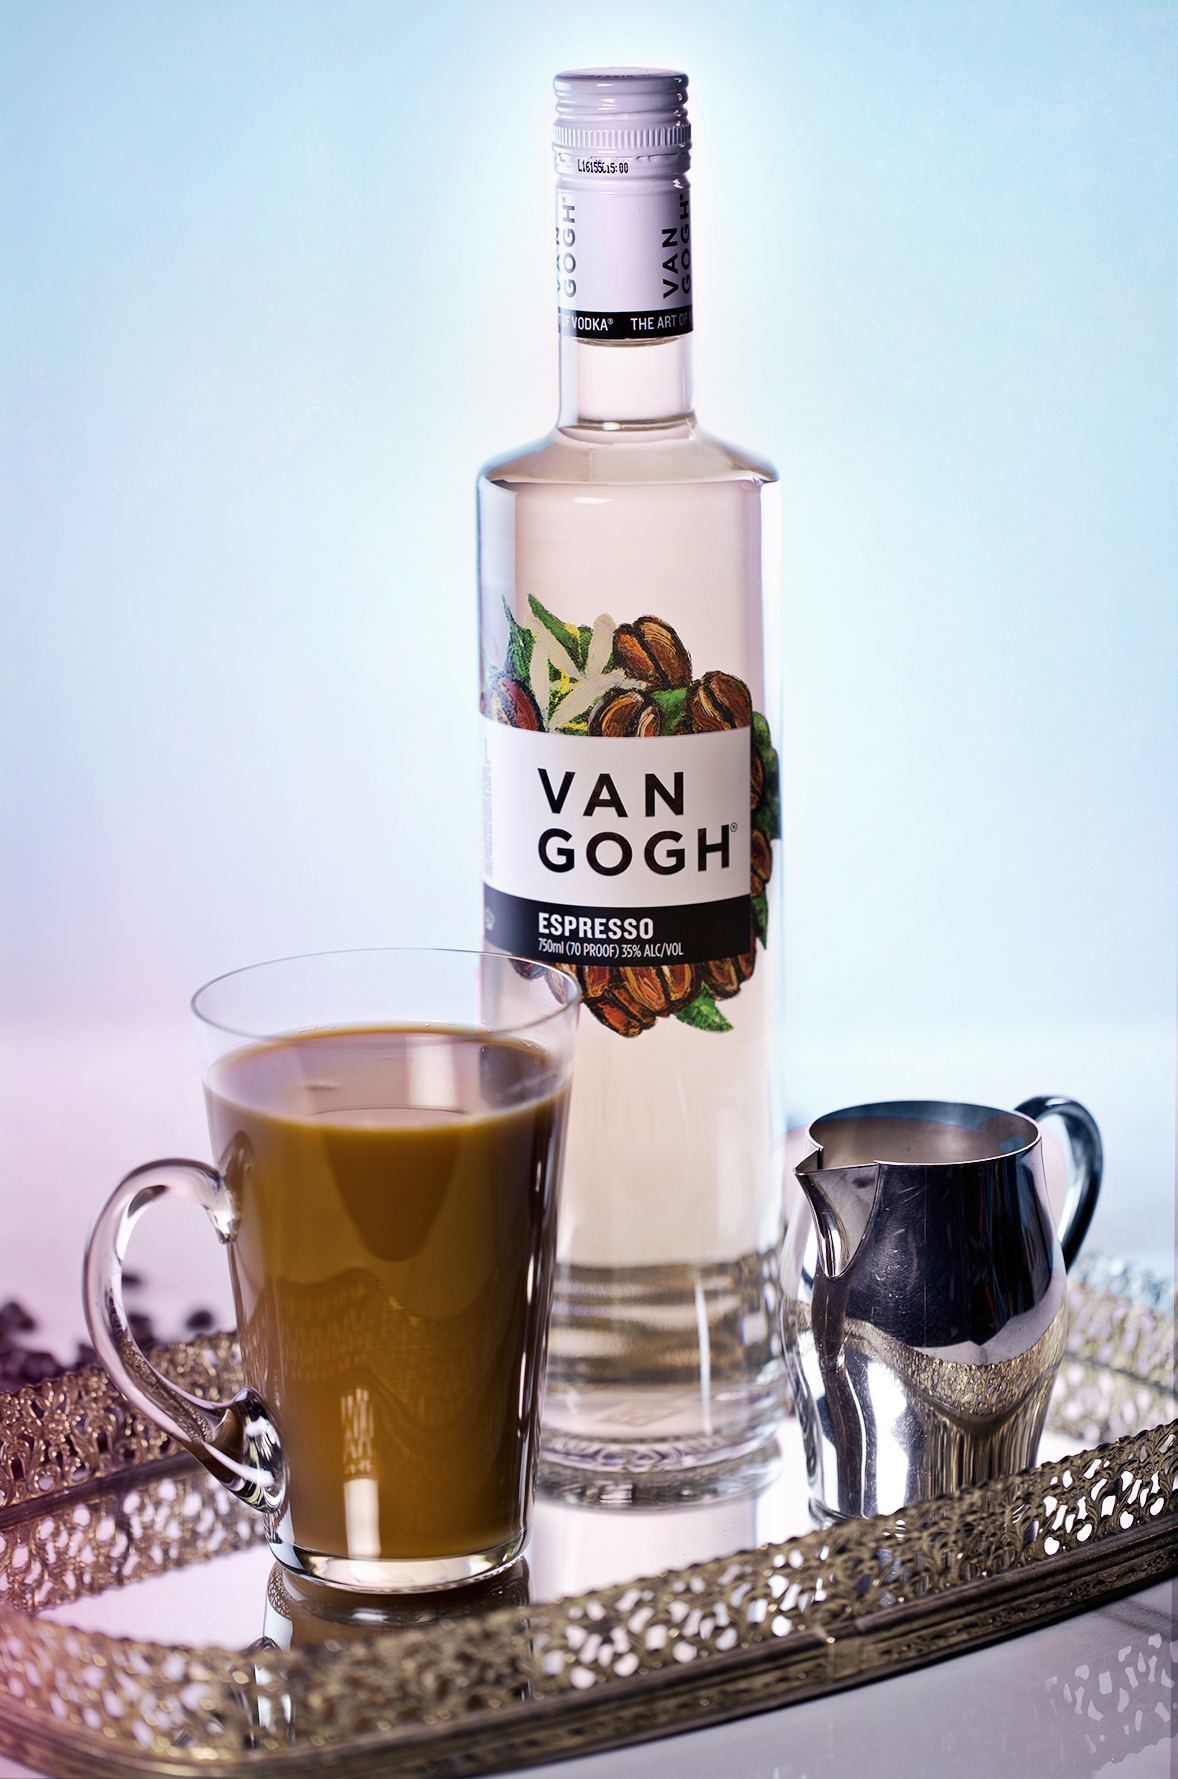 Dutch spiked coffee is a blend of espresso vodka, hot coffee and milk.